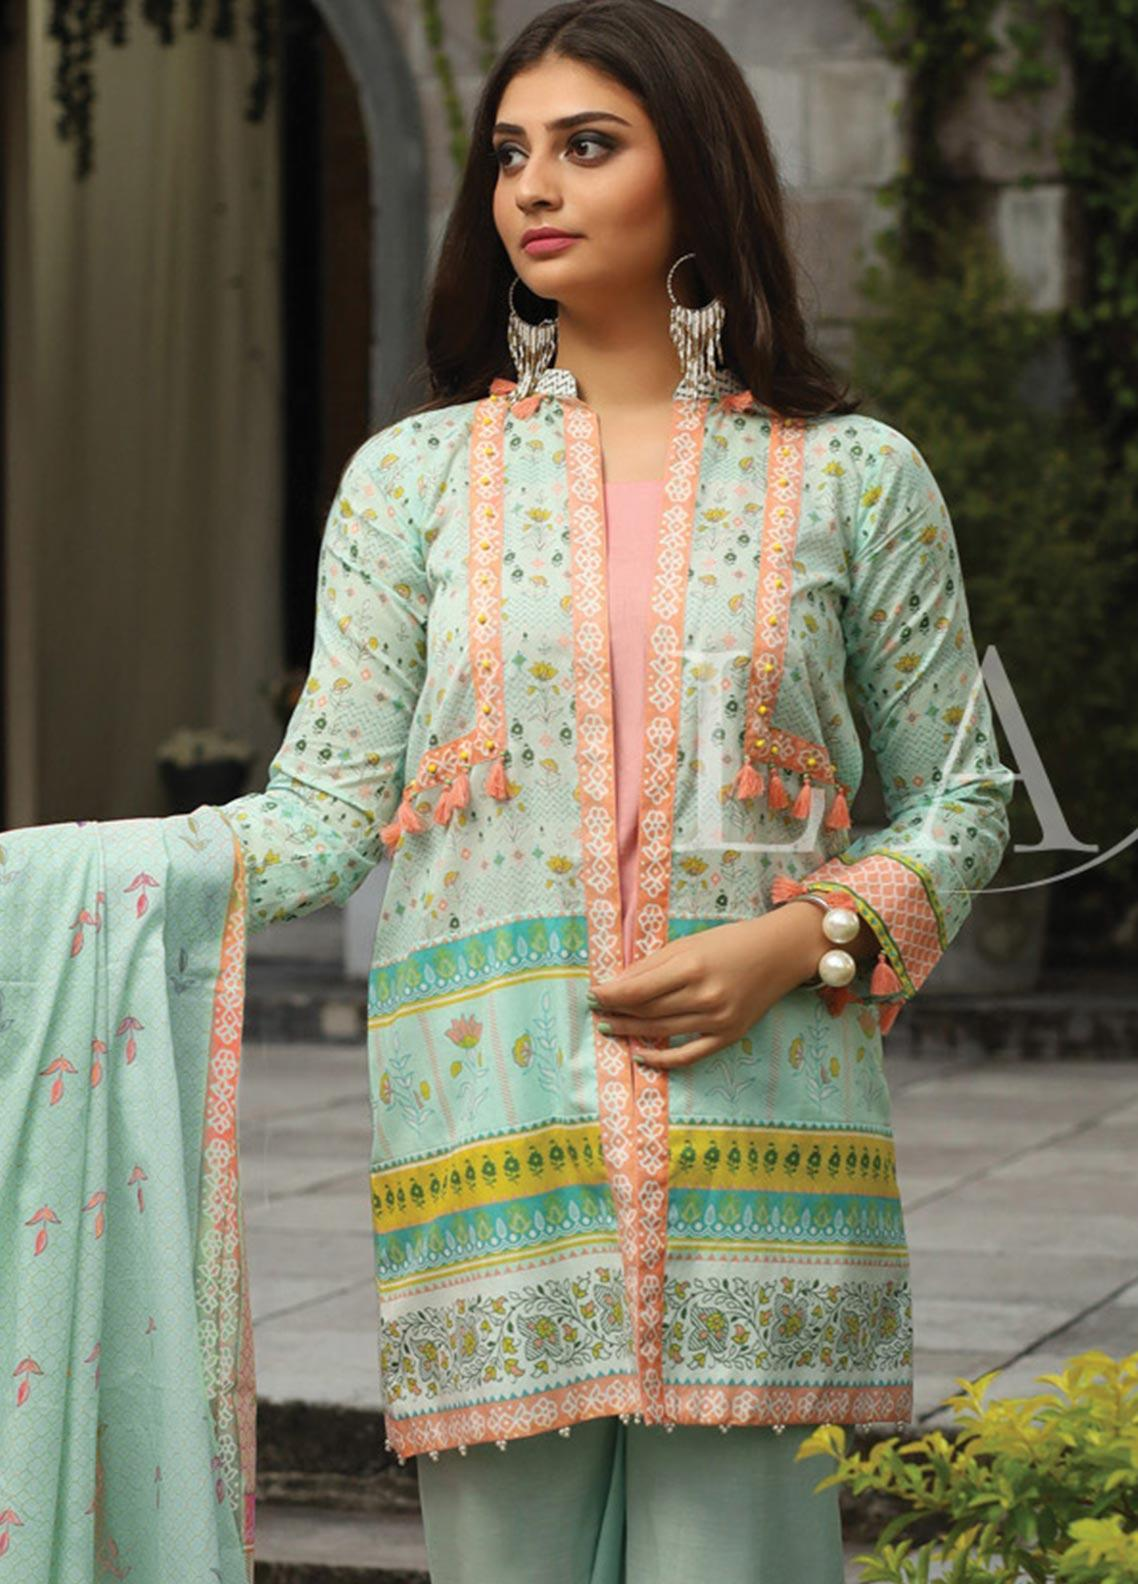 Lakhany Printed Lawn Unstitched 3 Piece Suit KL20LSM 28 - Spring / Summer Collection